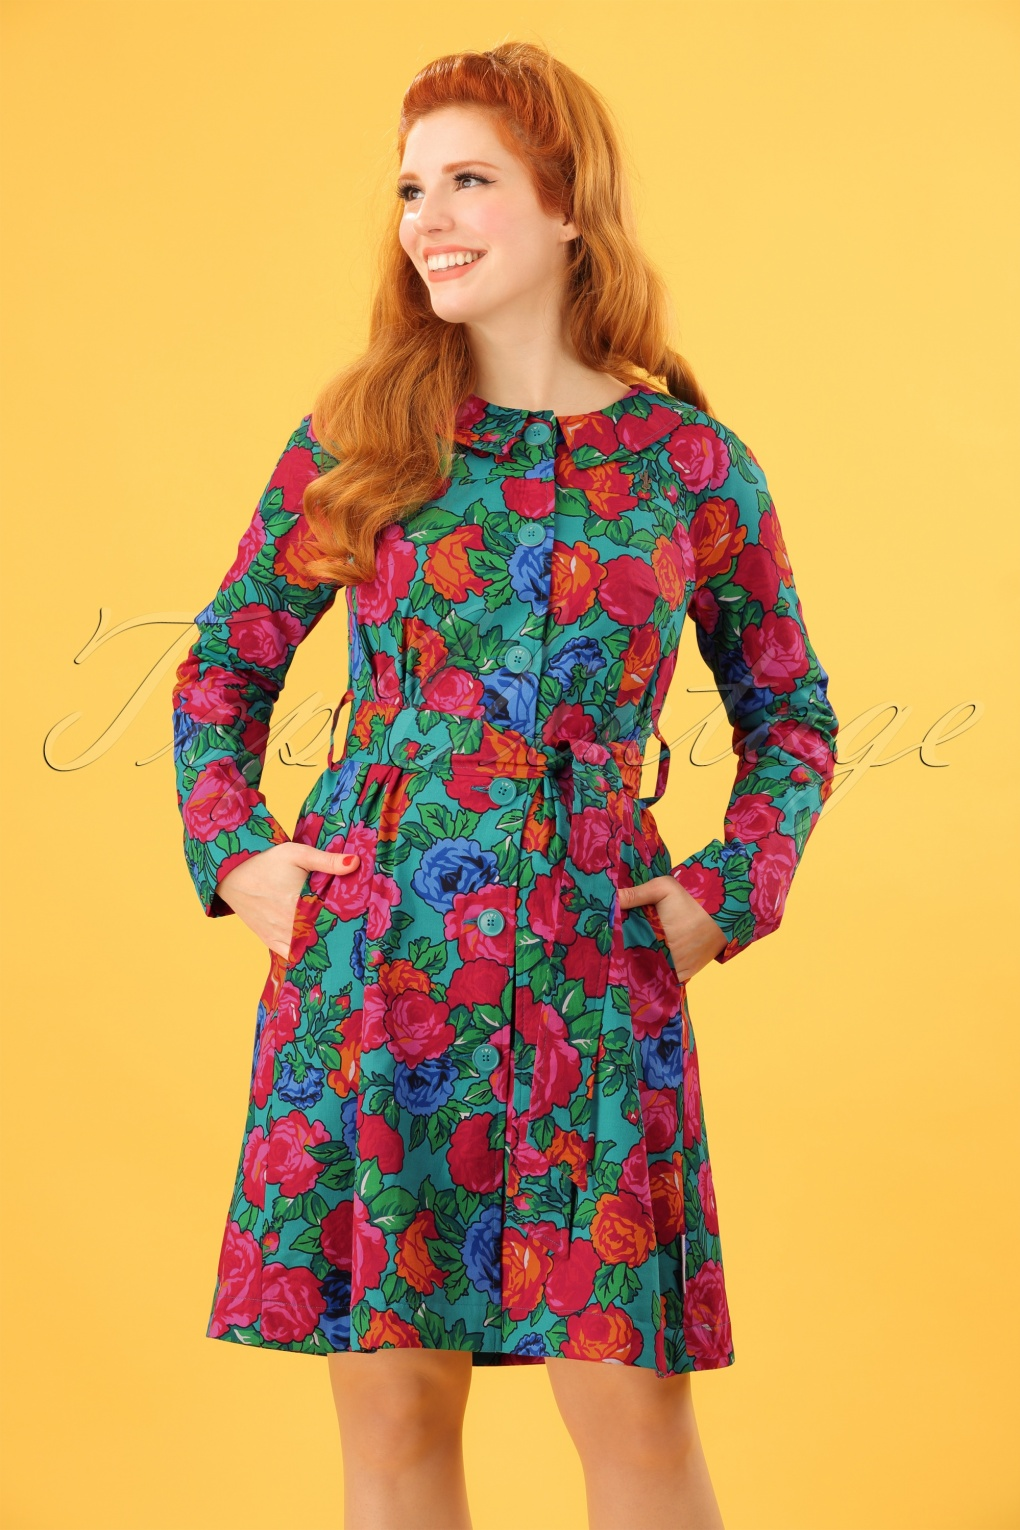 Vintage Coats & Jackets | Retro Coats and Jackets 60s Sunshine Of Mine Coat in Frida Flores £130.42 AT vintagedancer.com